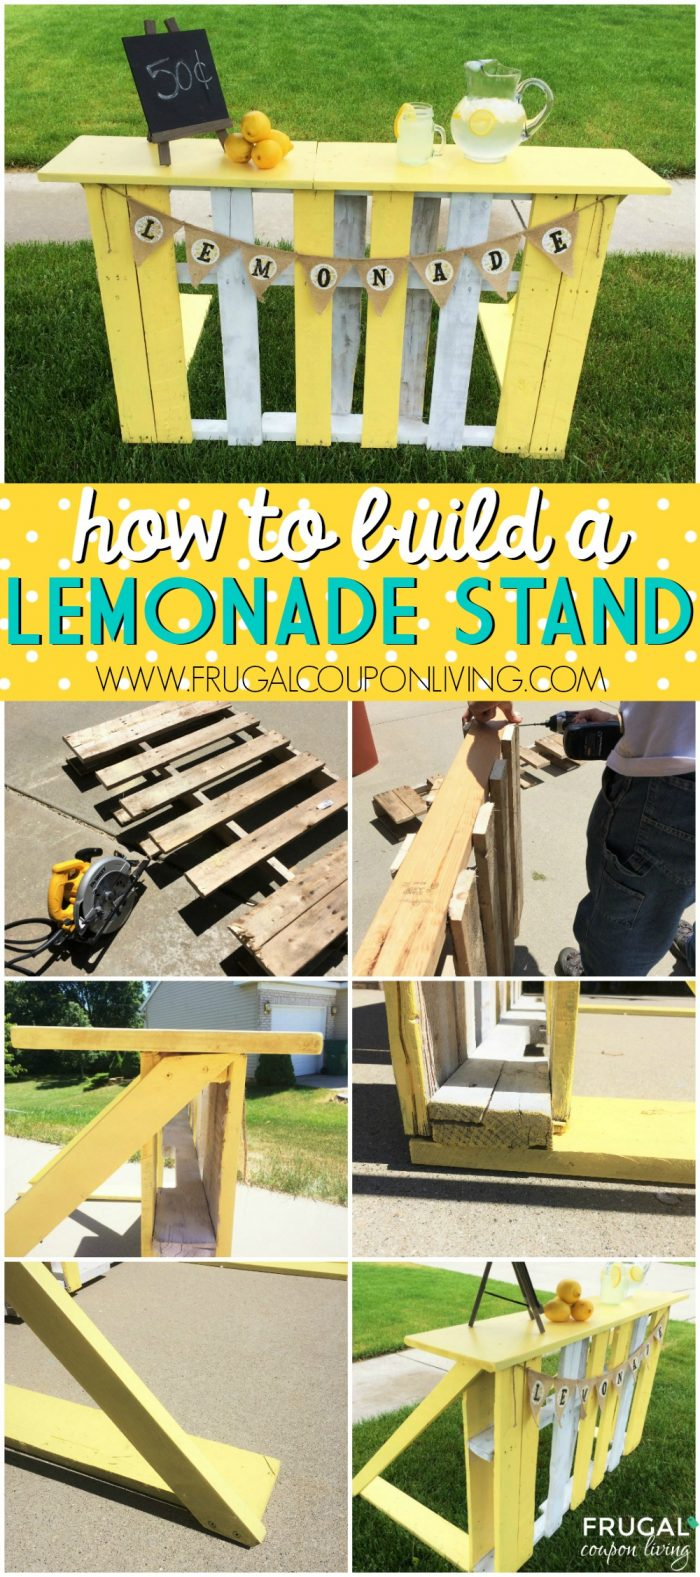 how-to-build-a-lemonade-stand-collage-2-frugal-coupon-living